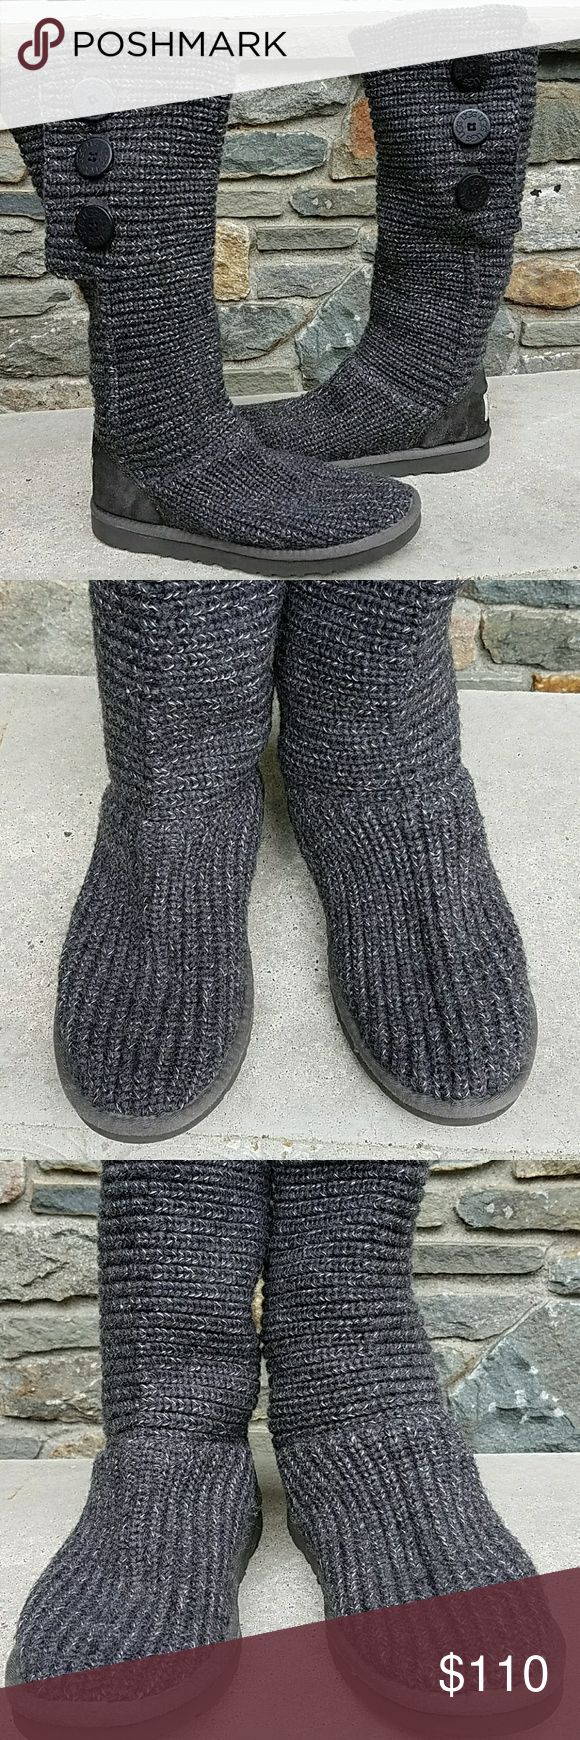 Ugg classic cardy button boots Grey yarns with silver threaded in the weave, 3 ugg buttons on each boot,ugg size us 8/ eu 39, shearling lined foot bed, textile shaft, very good condition UGG Shoes